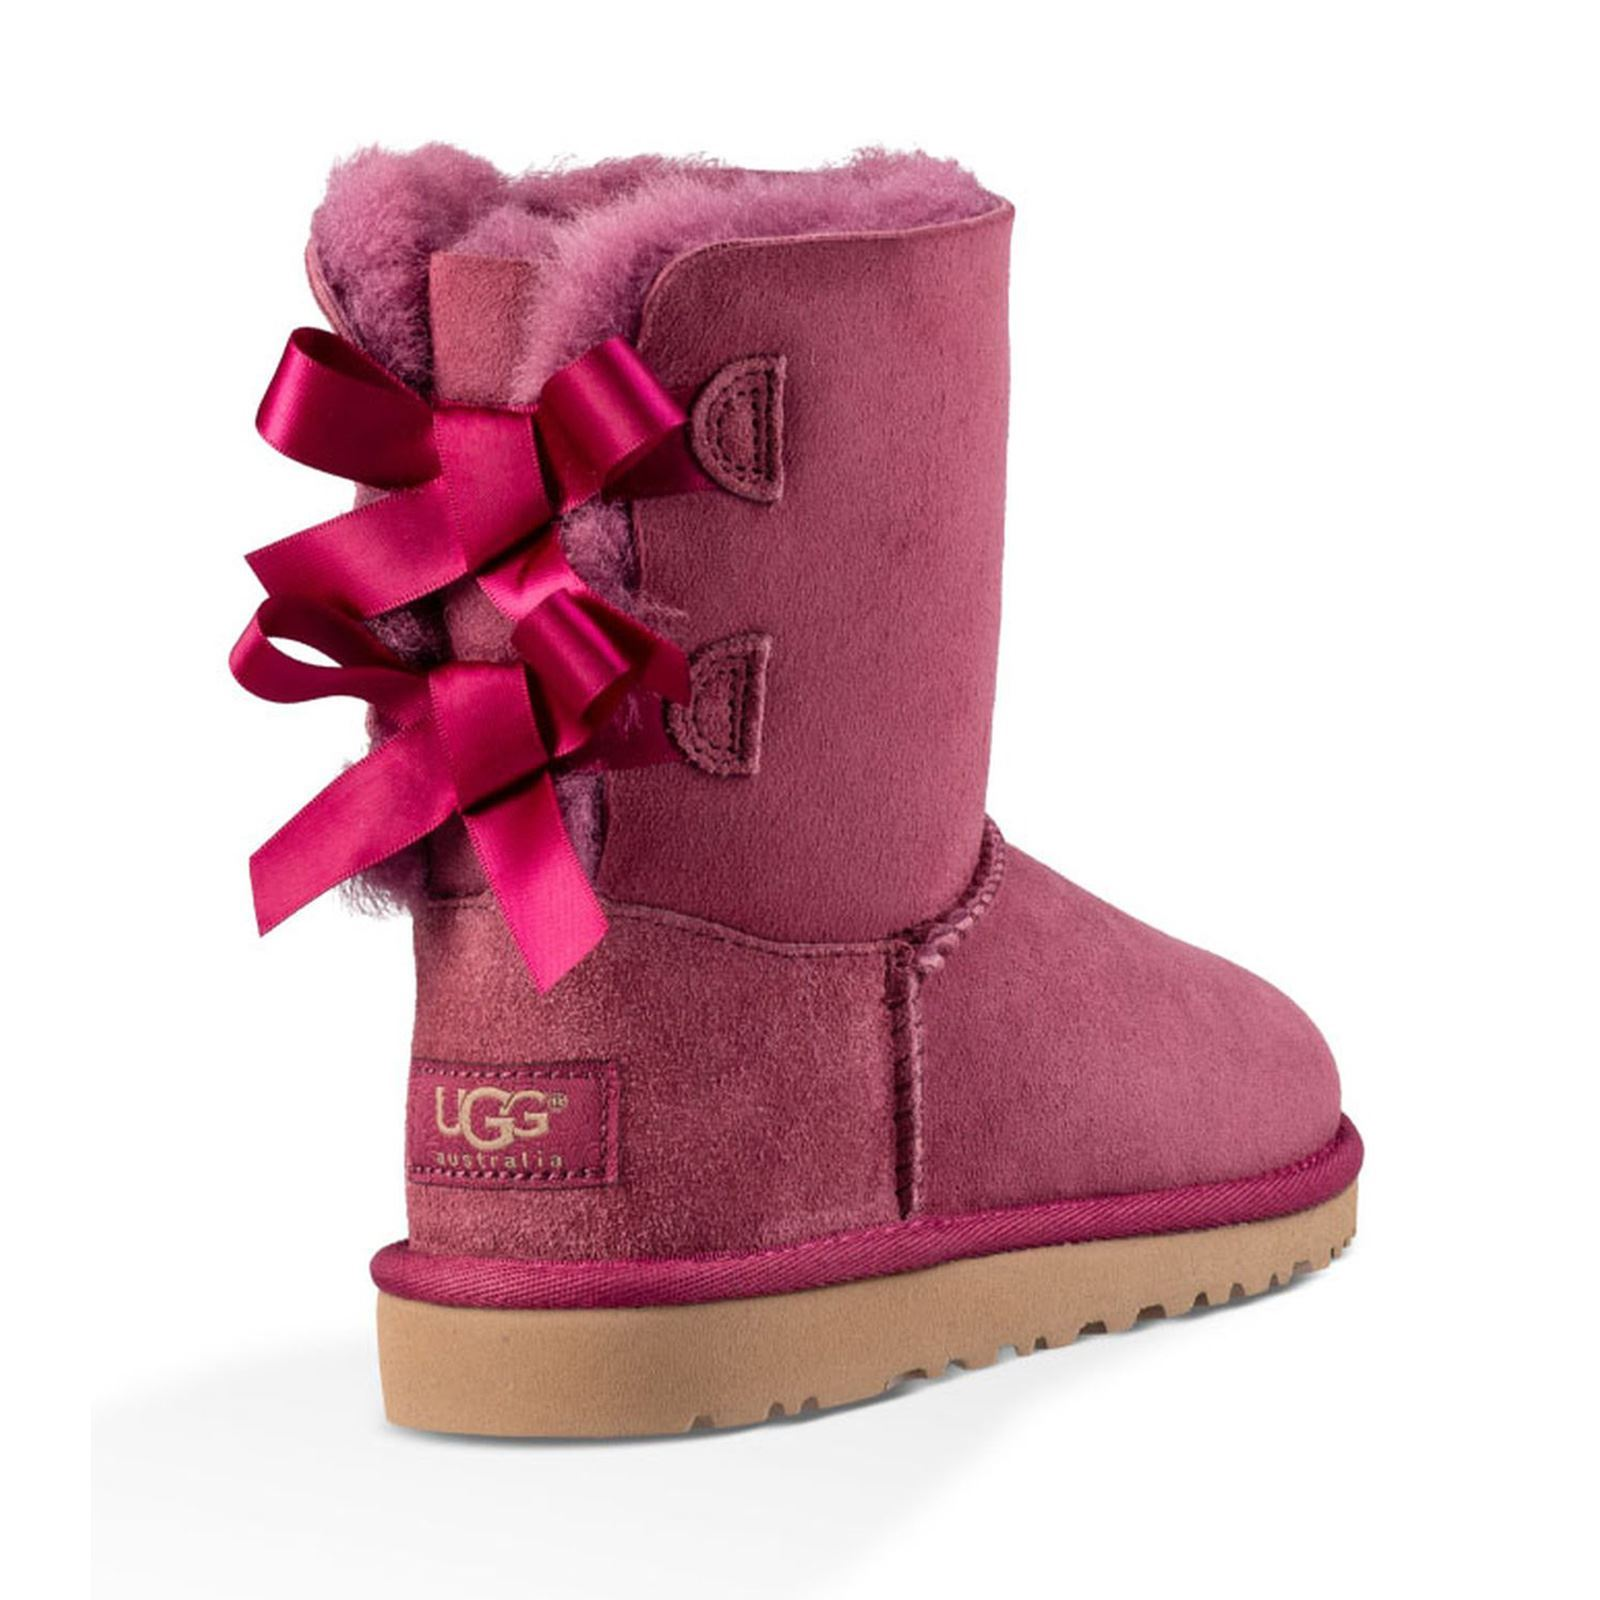 ugg rose noeud